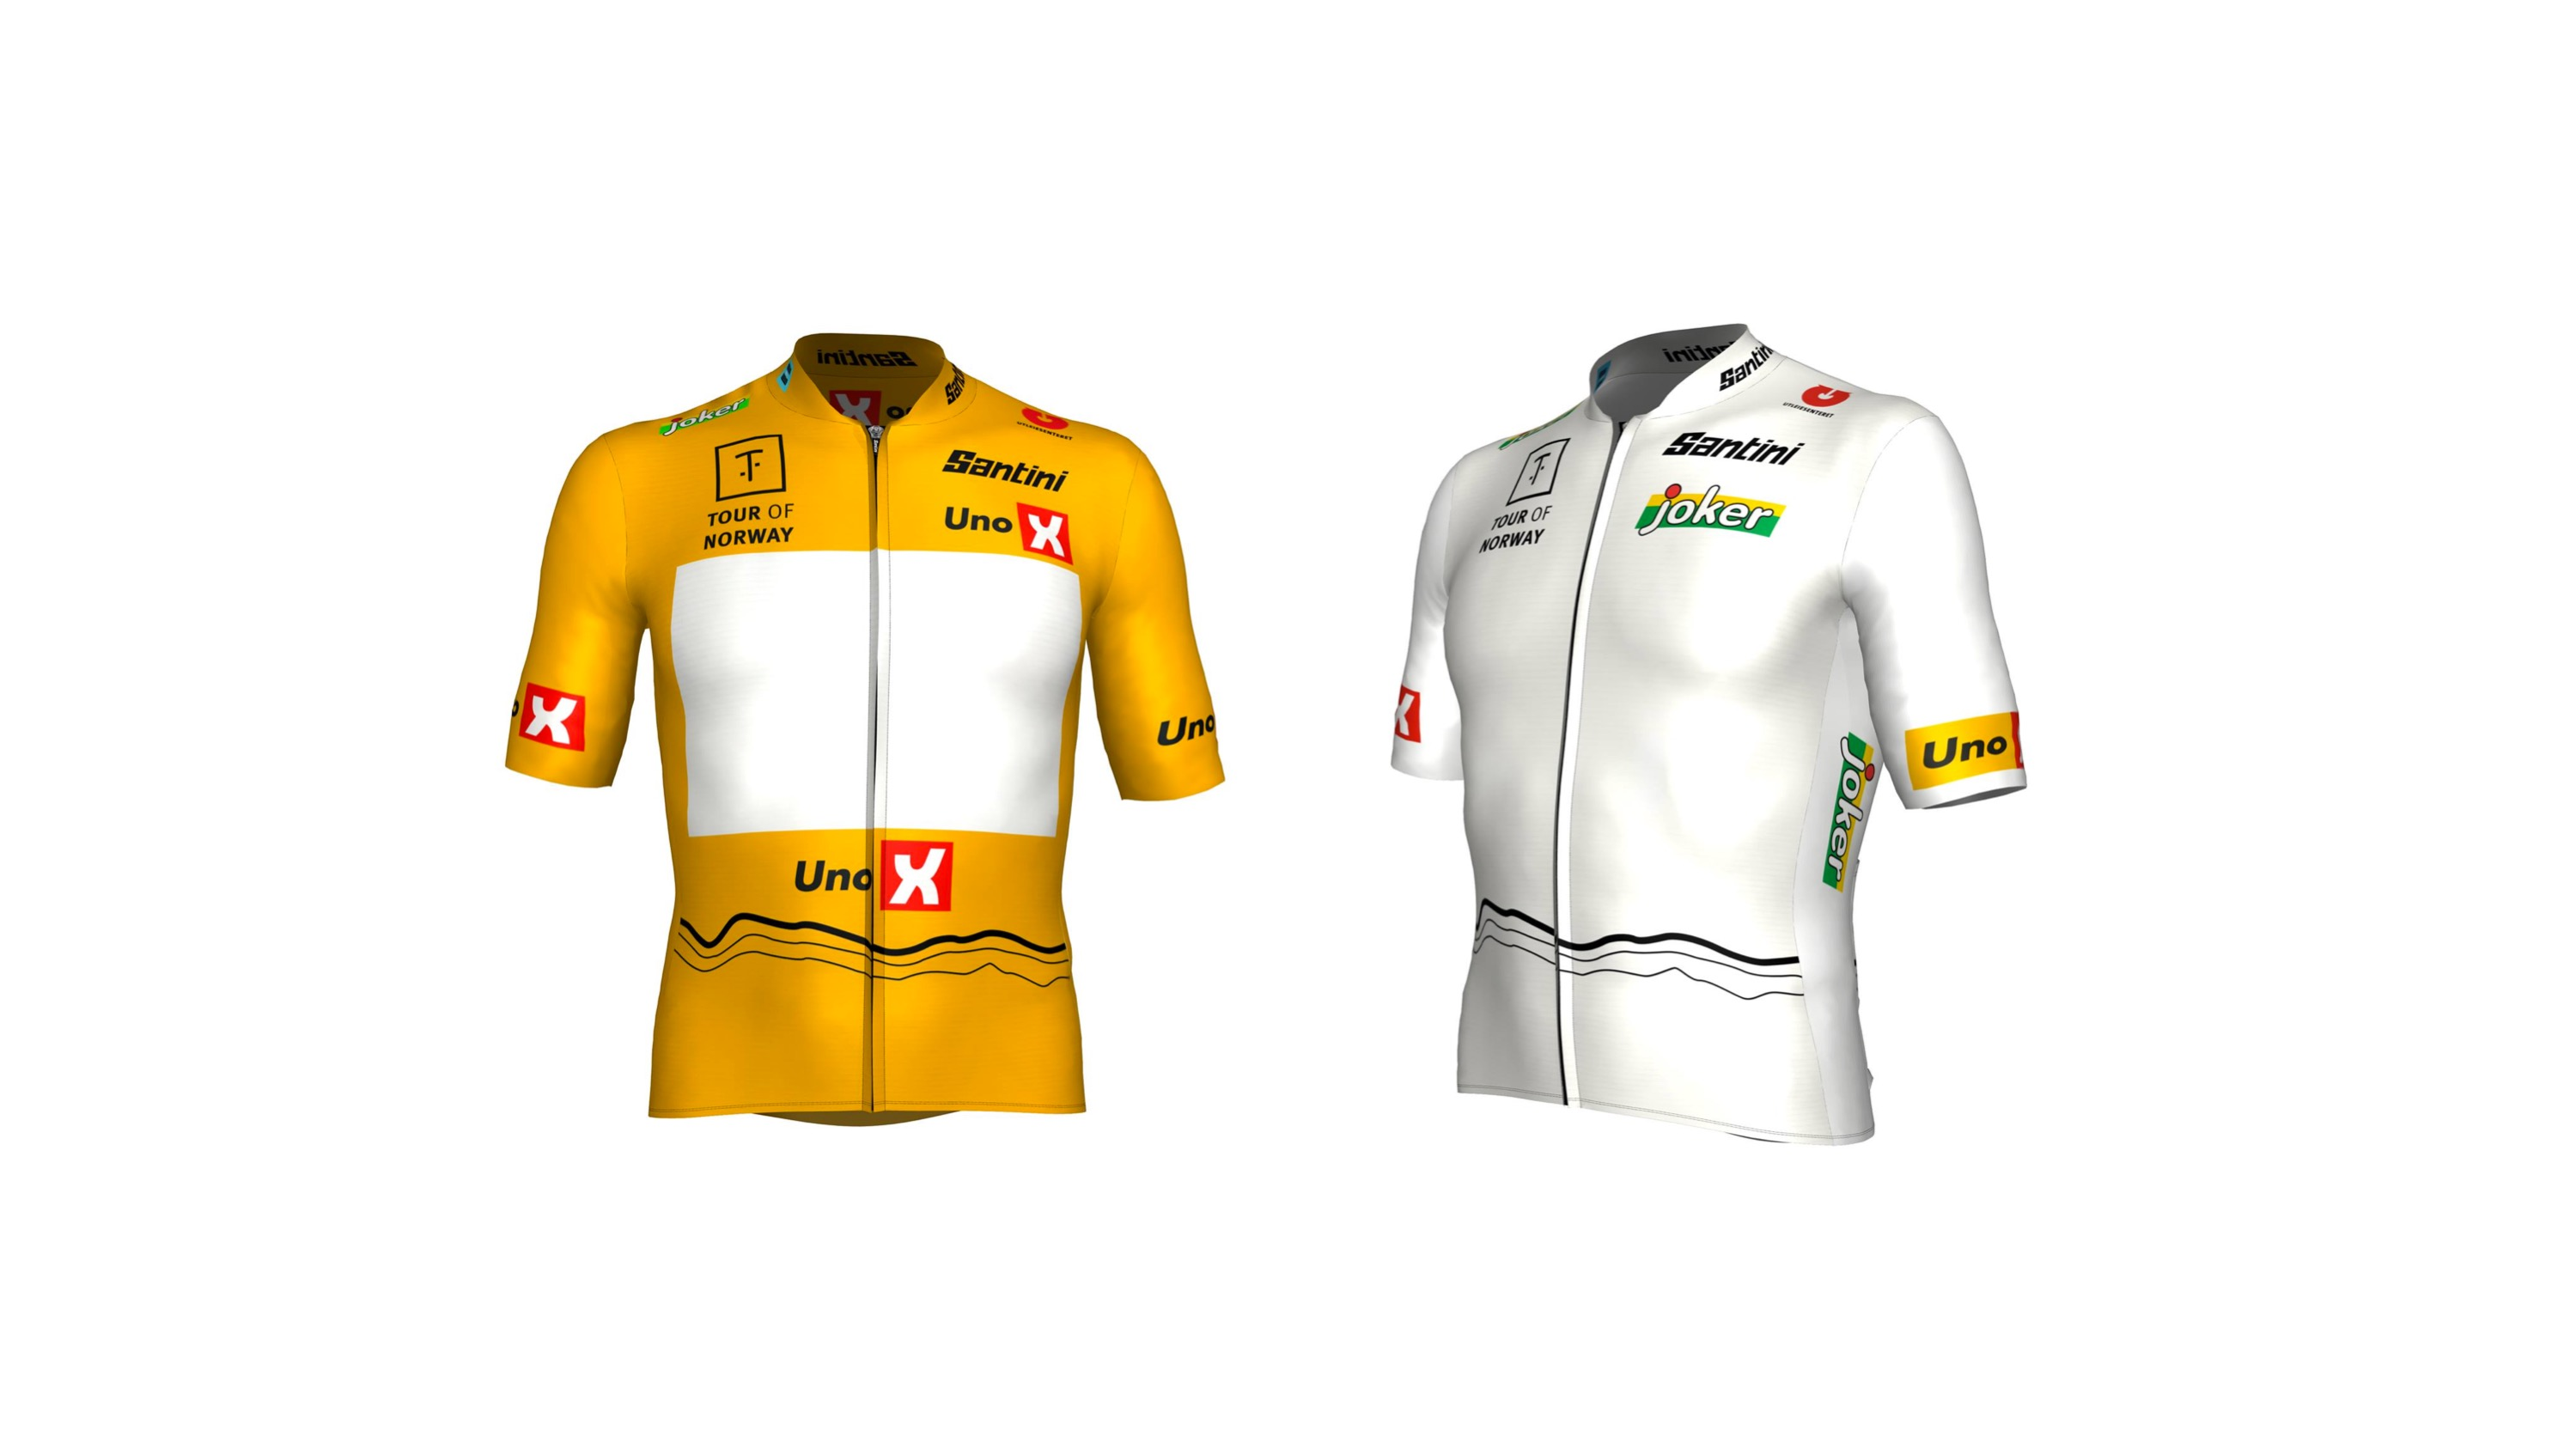 Discover Tour of Norway's jerseys by Santini!